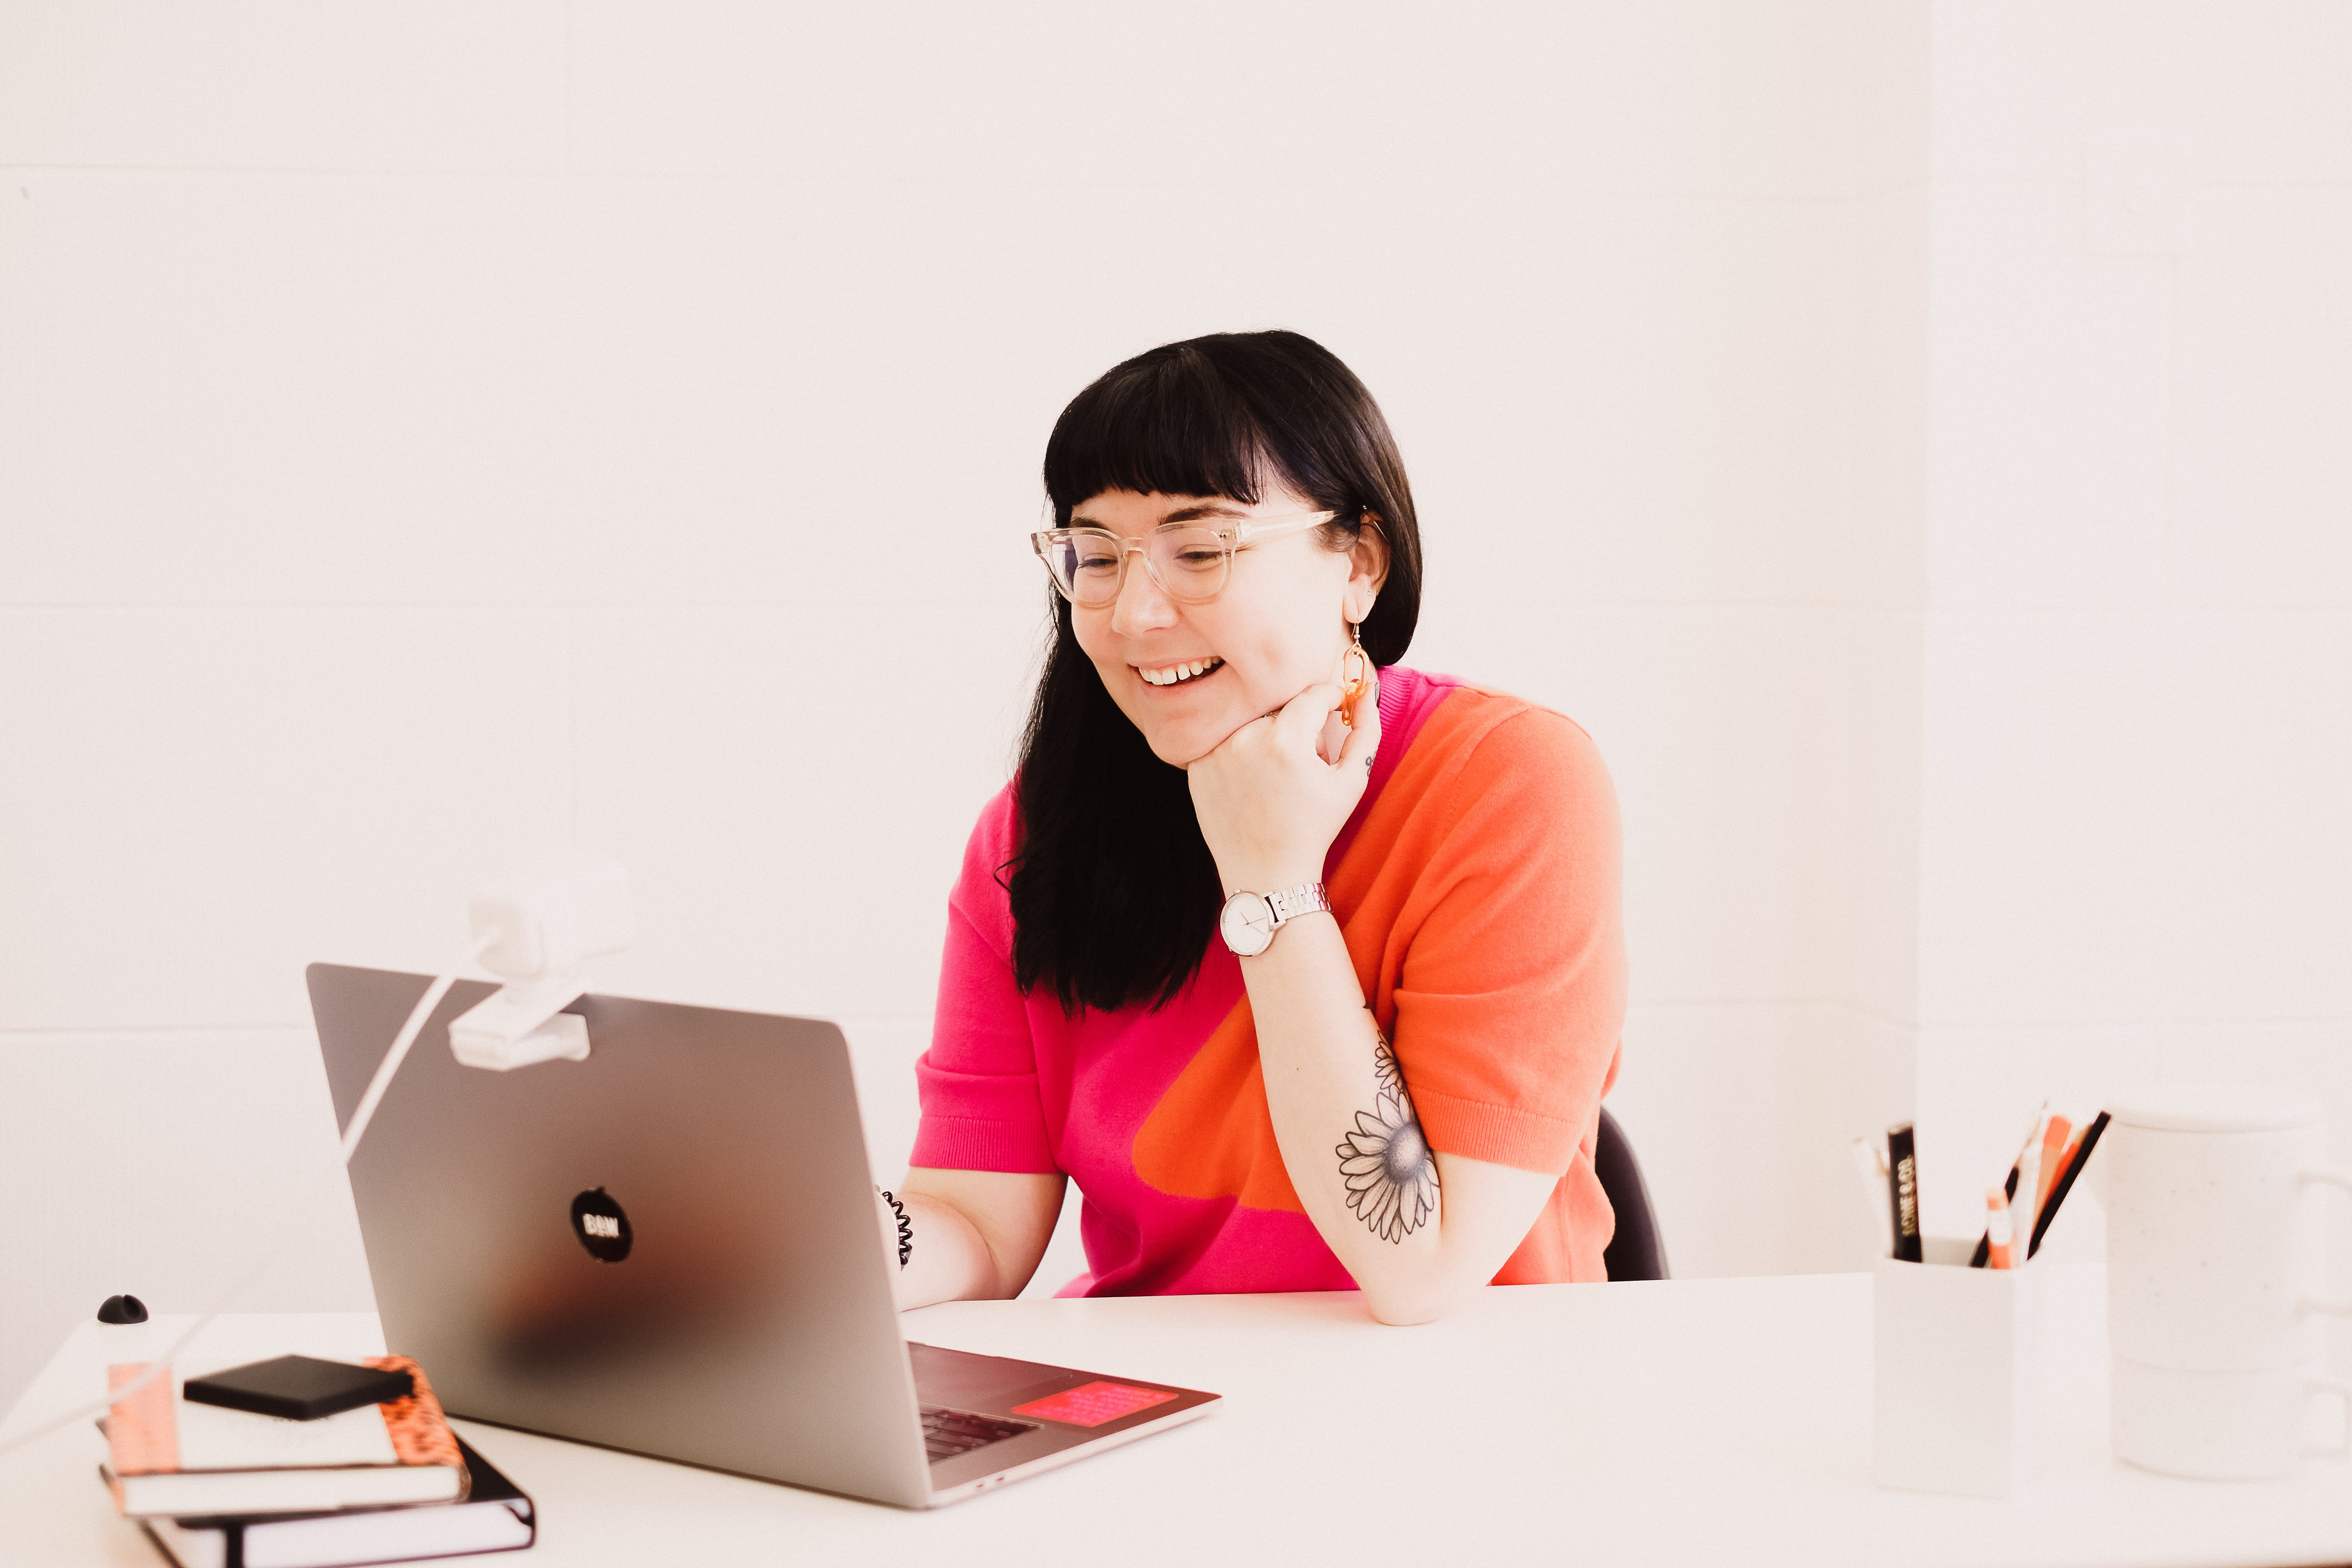 Hollie sitting behind a desk looking at a laptop, she has medium length dark hair which is down, and a full fringe. She is wearing a bright orange and pink knit sweater and is leaning on her hand.